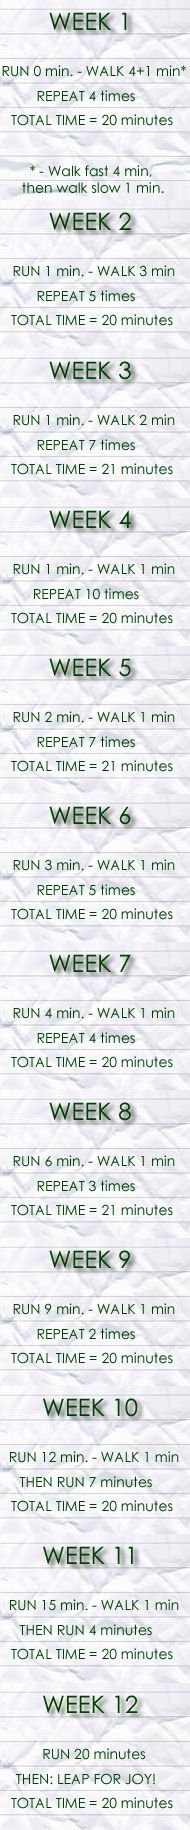 I could do this! It is time to get back on track and in shape!.